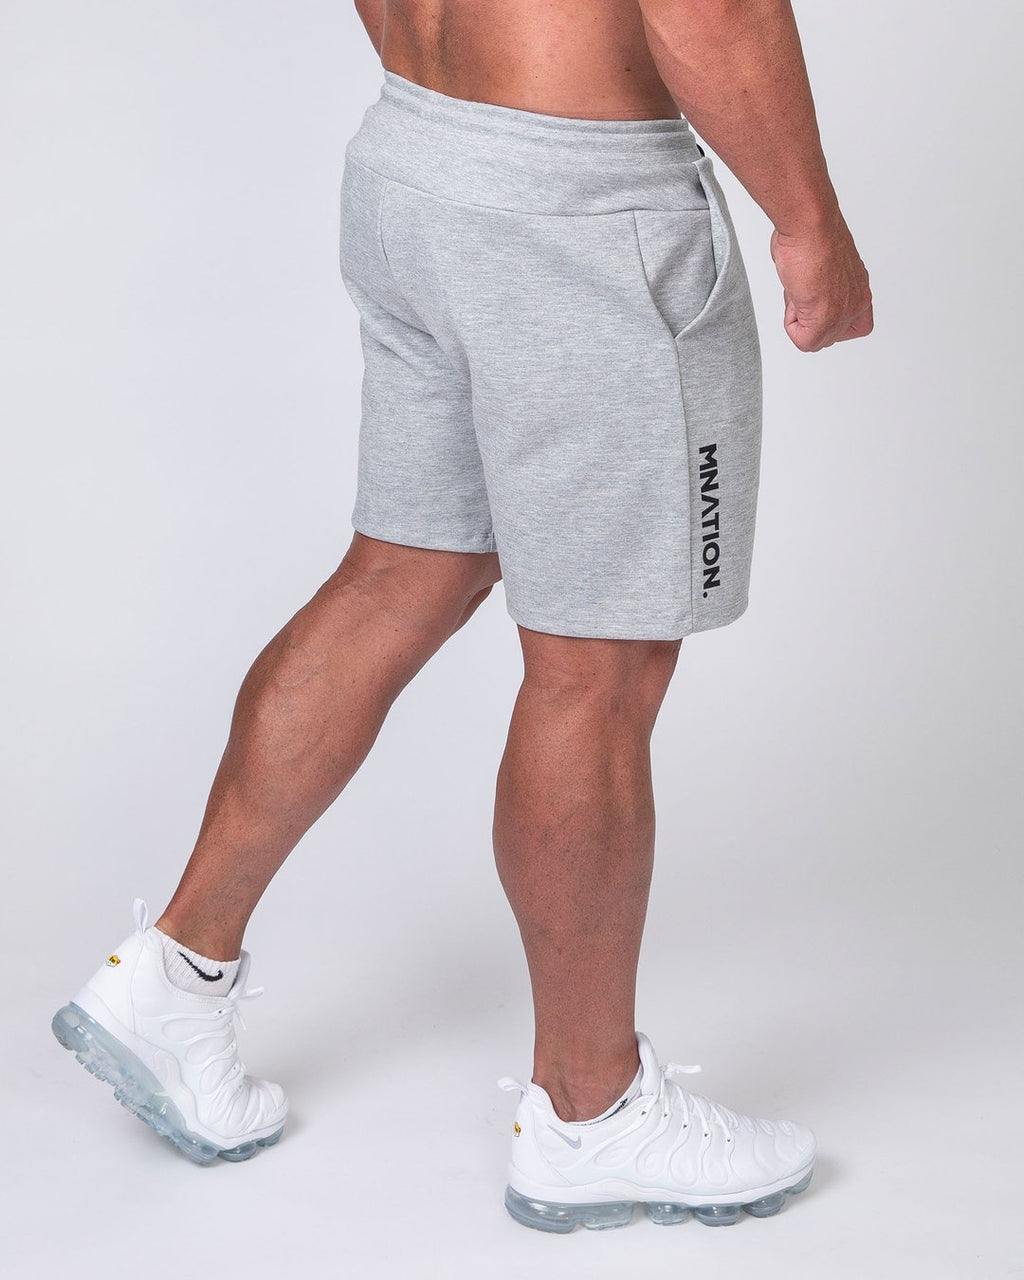 MENS CASUAL SHORTS - GREY